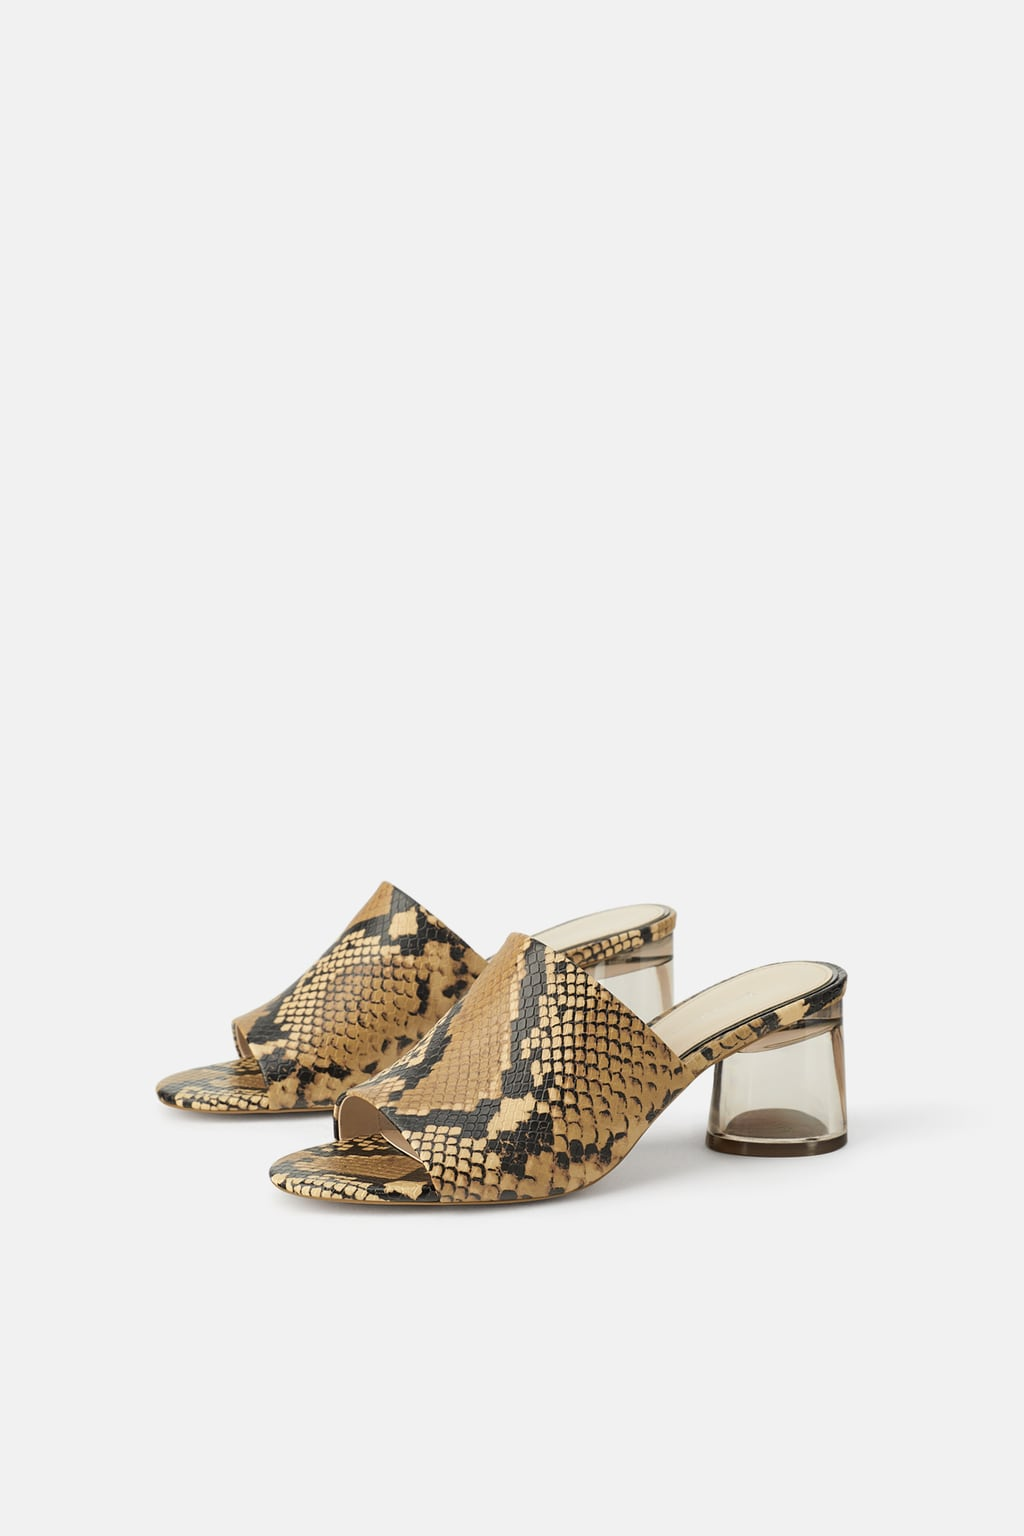 Zara Shoes -